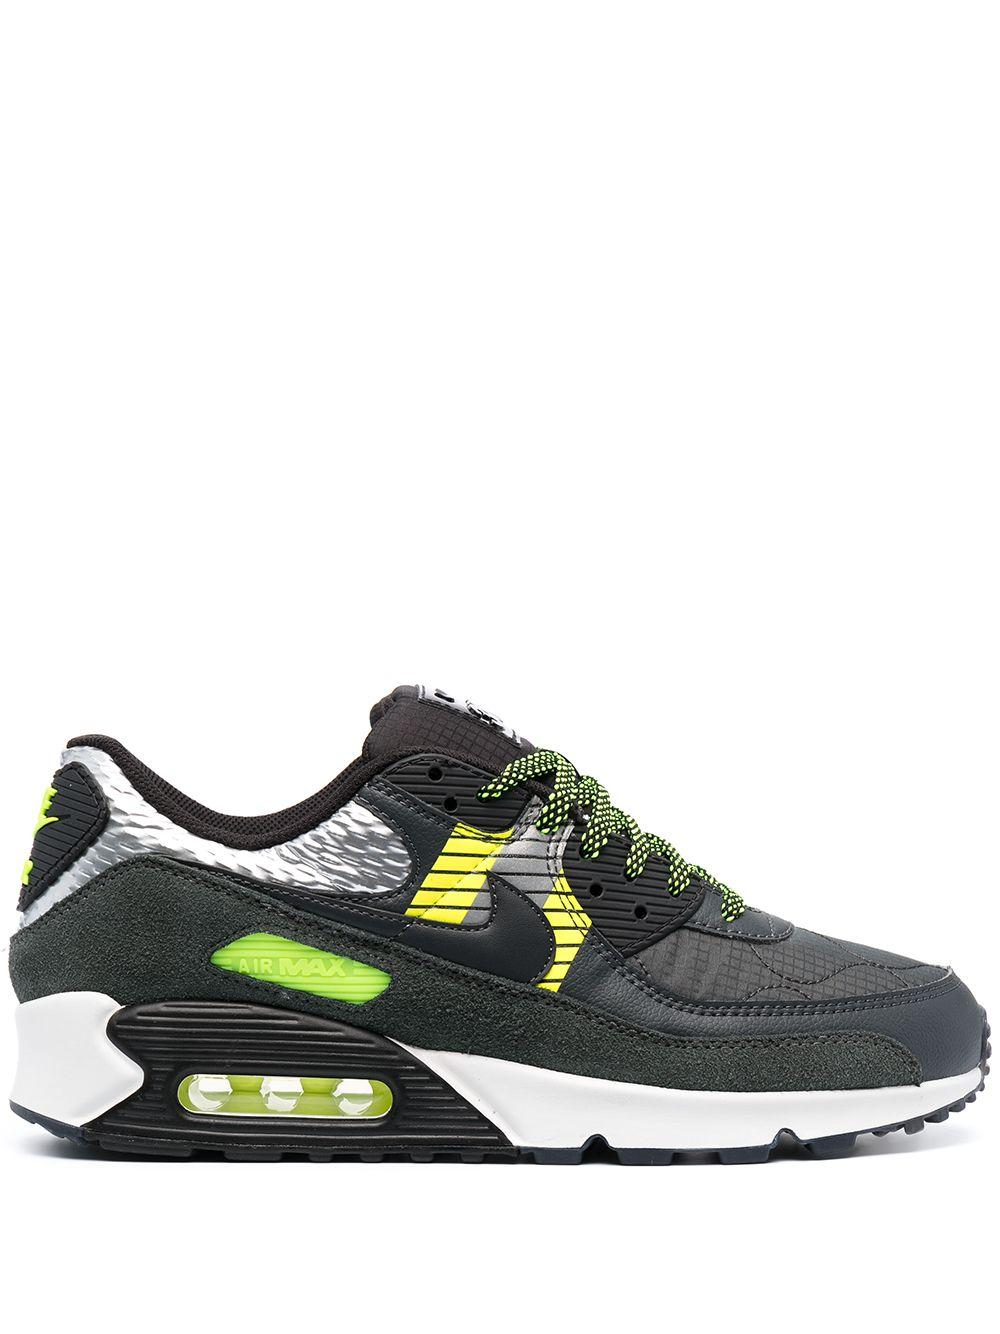 Nike Leather Air Max 90 3m Sneakers in Grey (Grey) for Men - Lyst